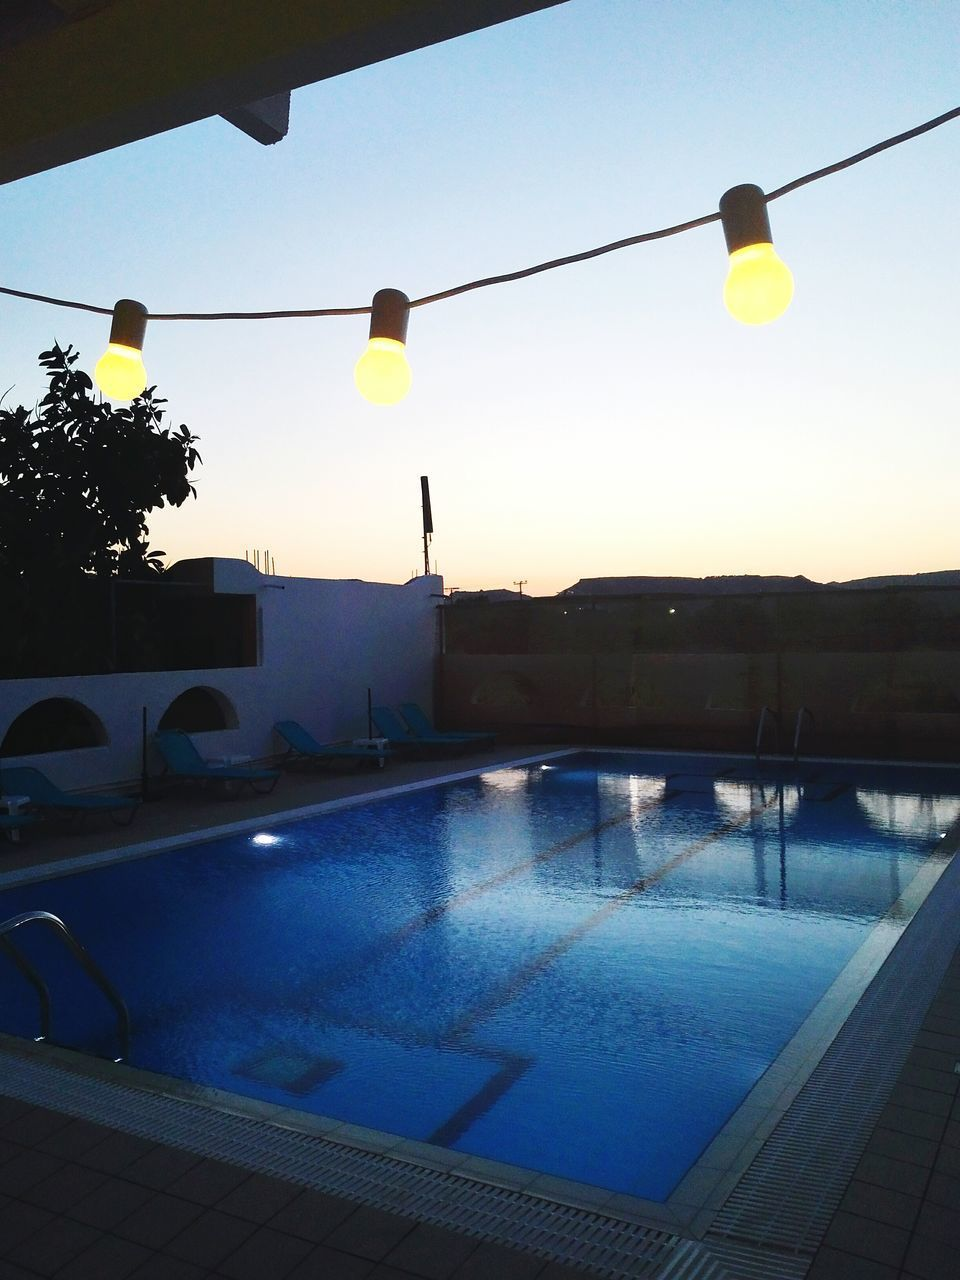 swimming pool, water, no people, outdoors, clear sky, yellow, sunset, tree, day, sky